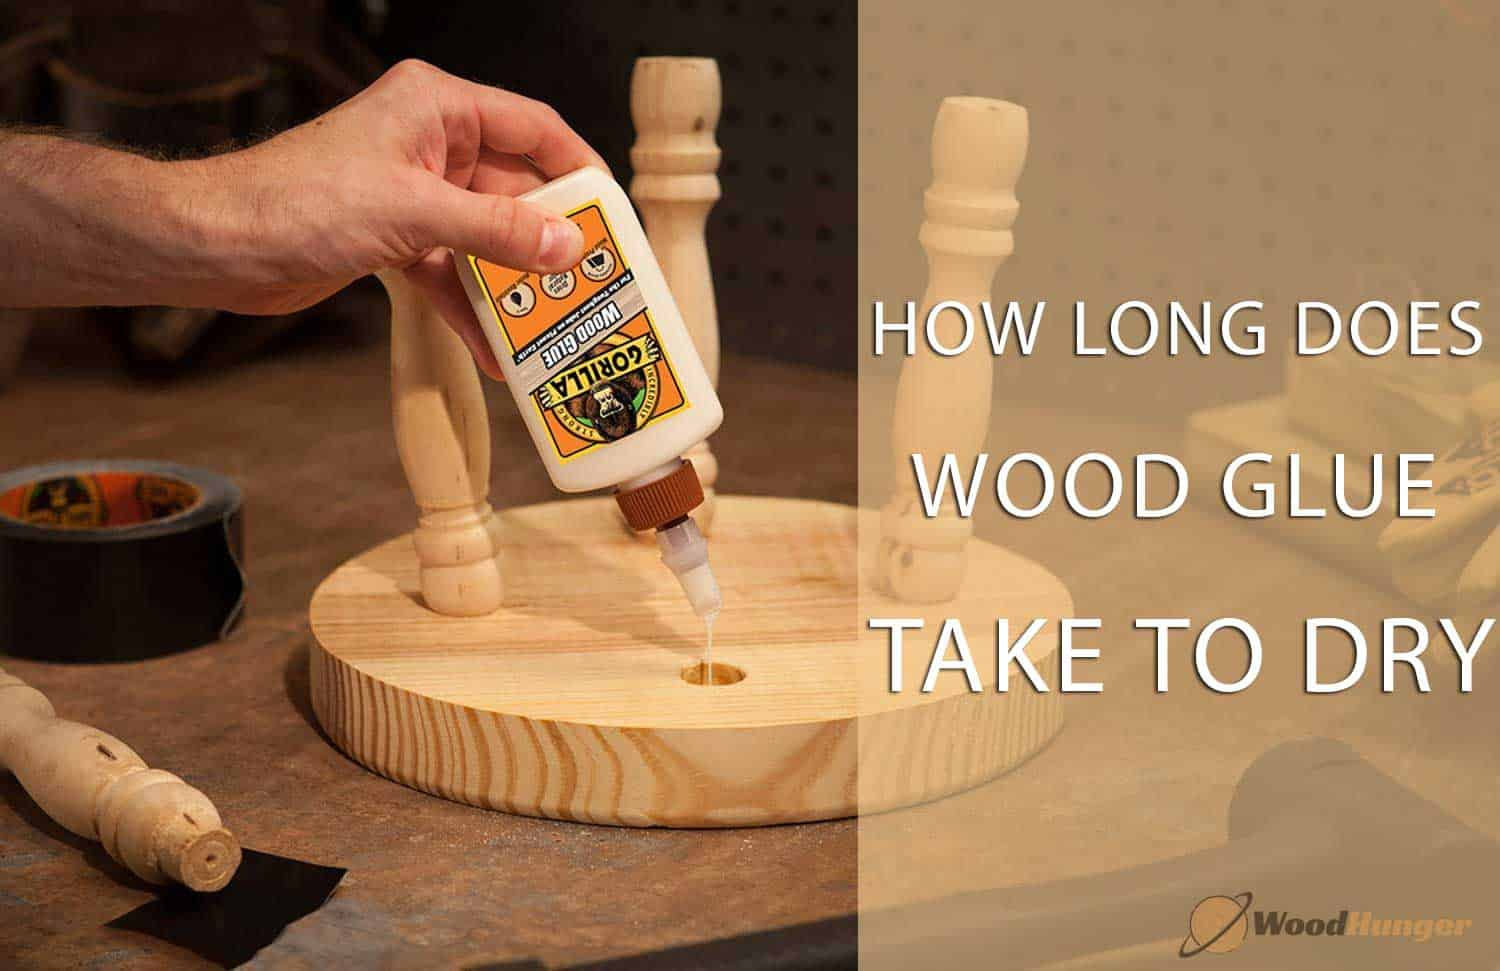 How Long Does Wood Glue Take to Dry? Step by Step Guide